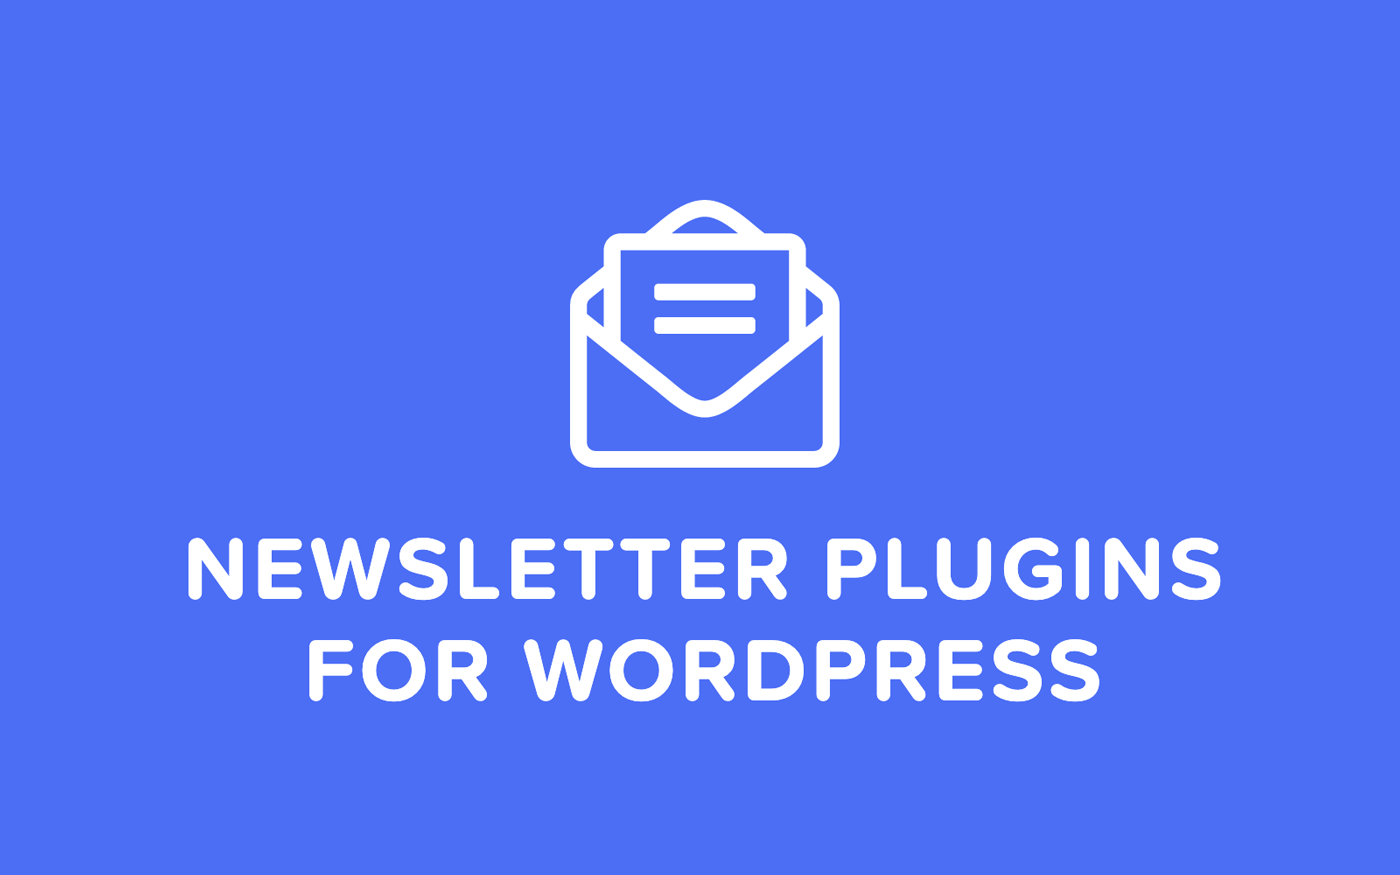 Top 5 Newsletter Plugins For WordPress To Earn Subscribers